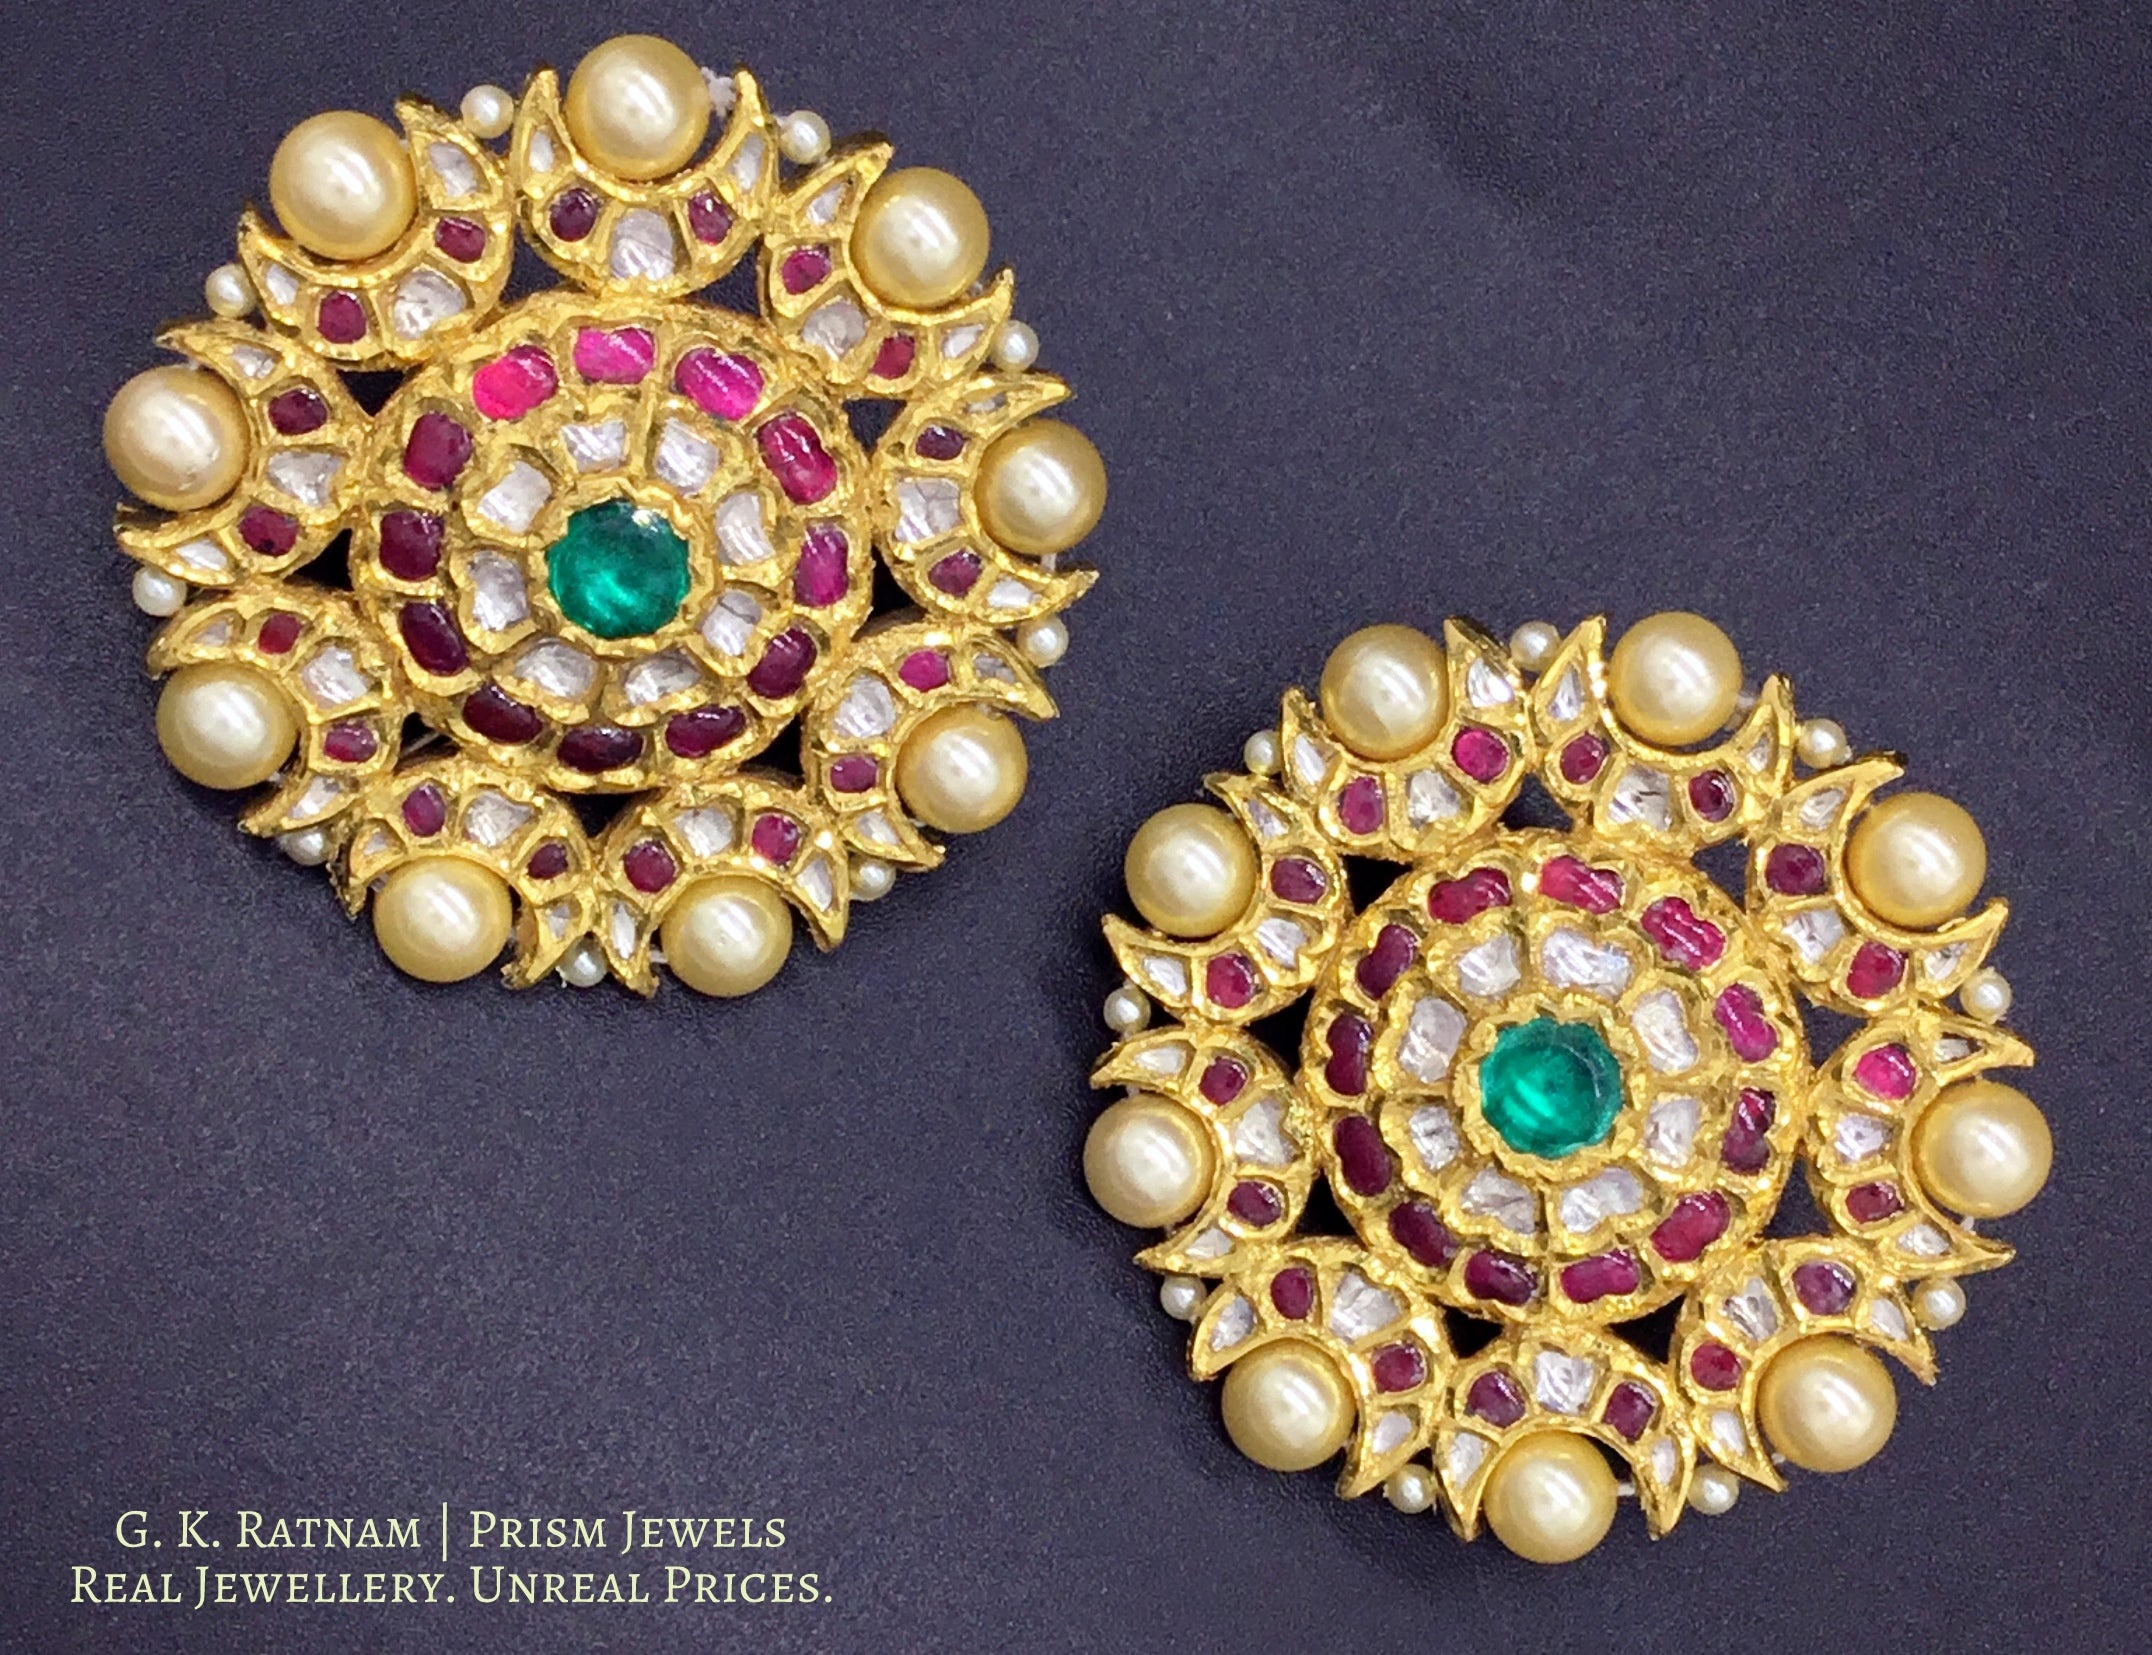 18k Gold and Diamond Polki south-style Karanphool Earring Pair with Rubies and Emeralds - gold diamond polki kundan meena jadau jewellery